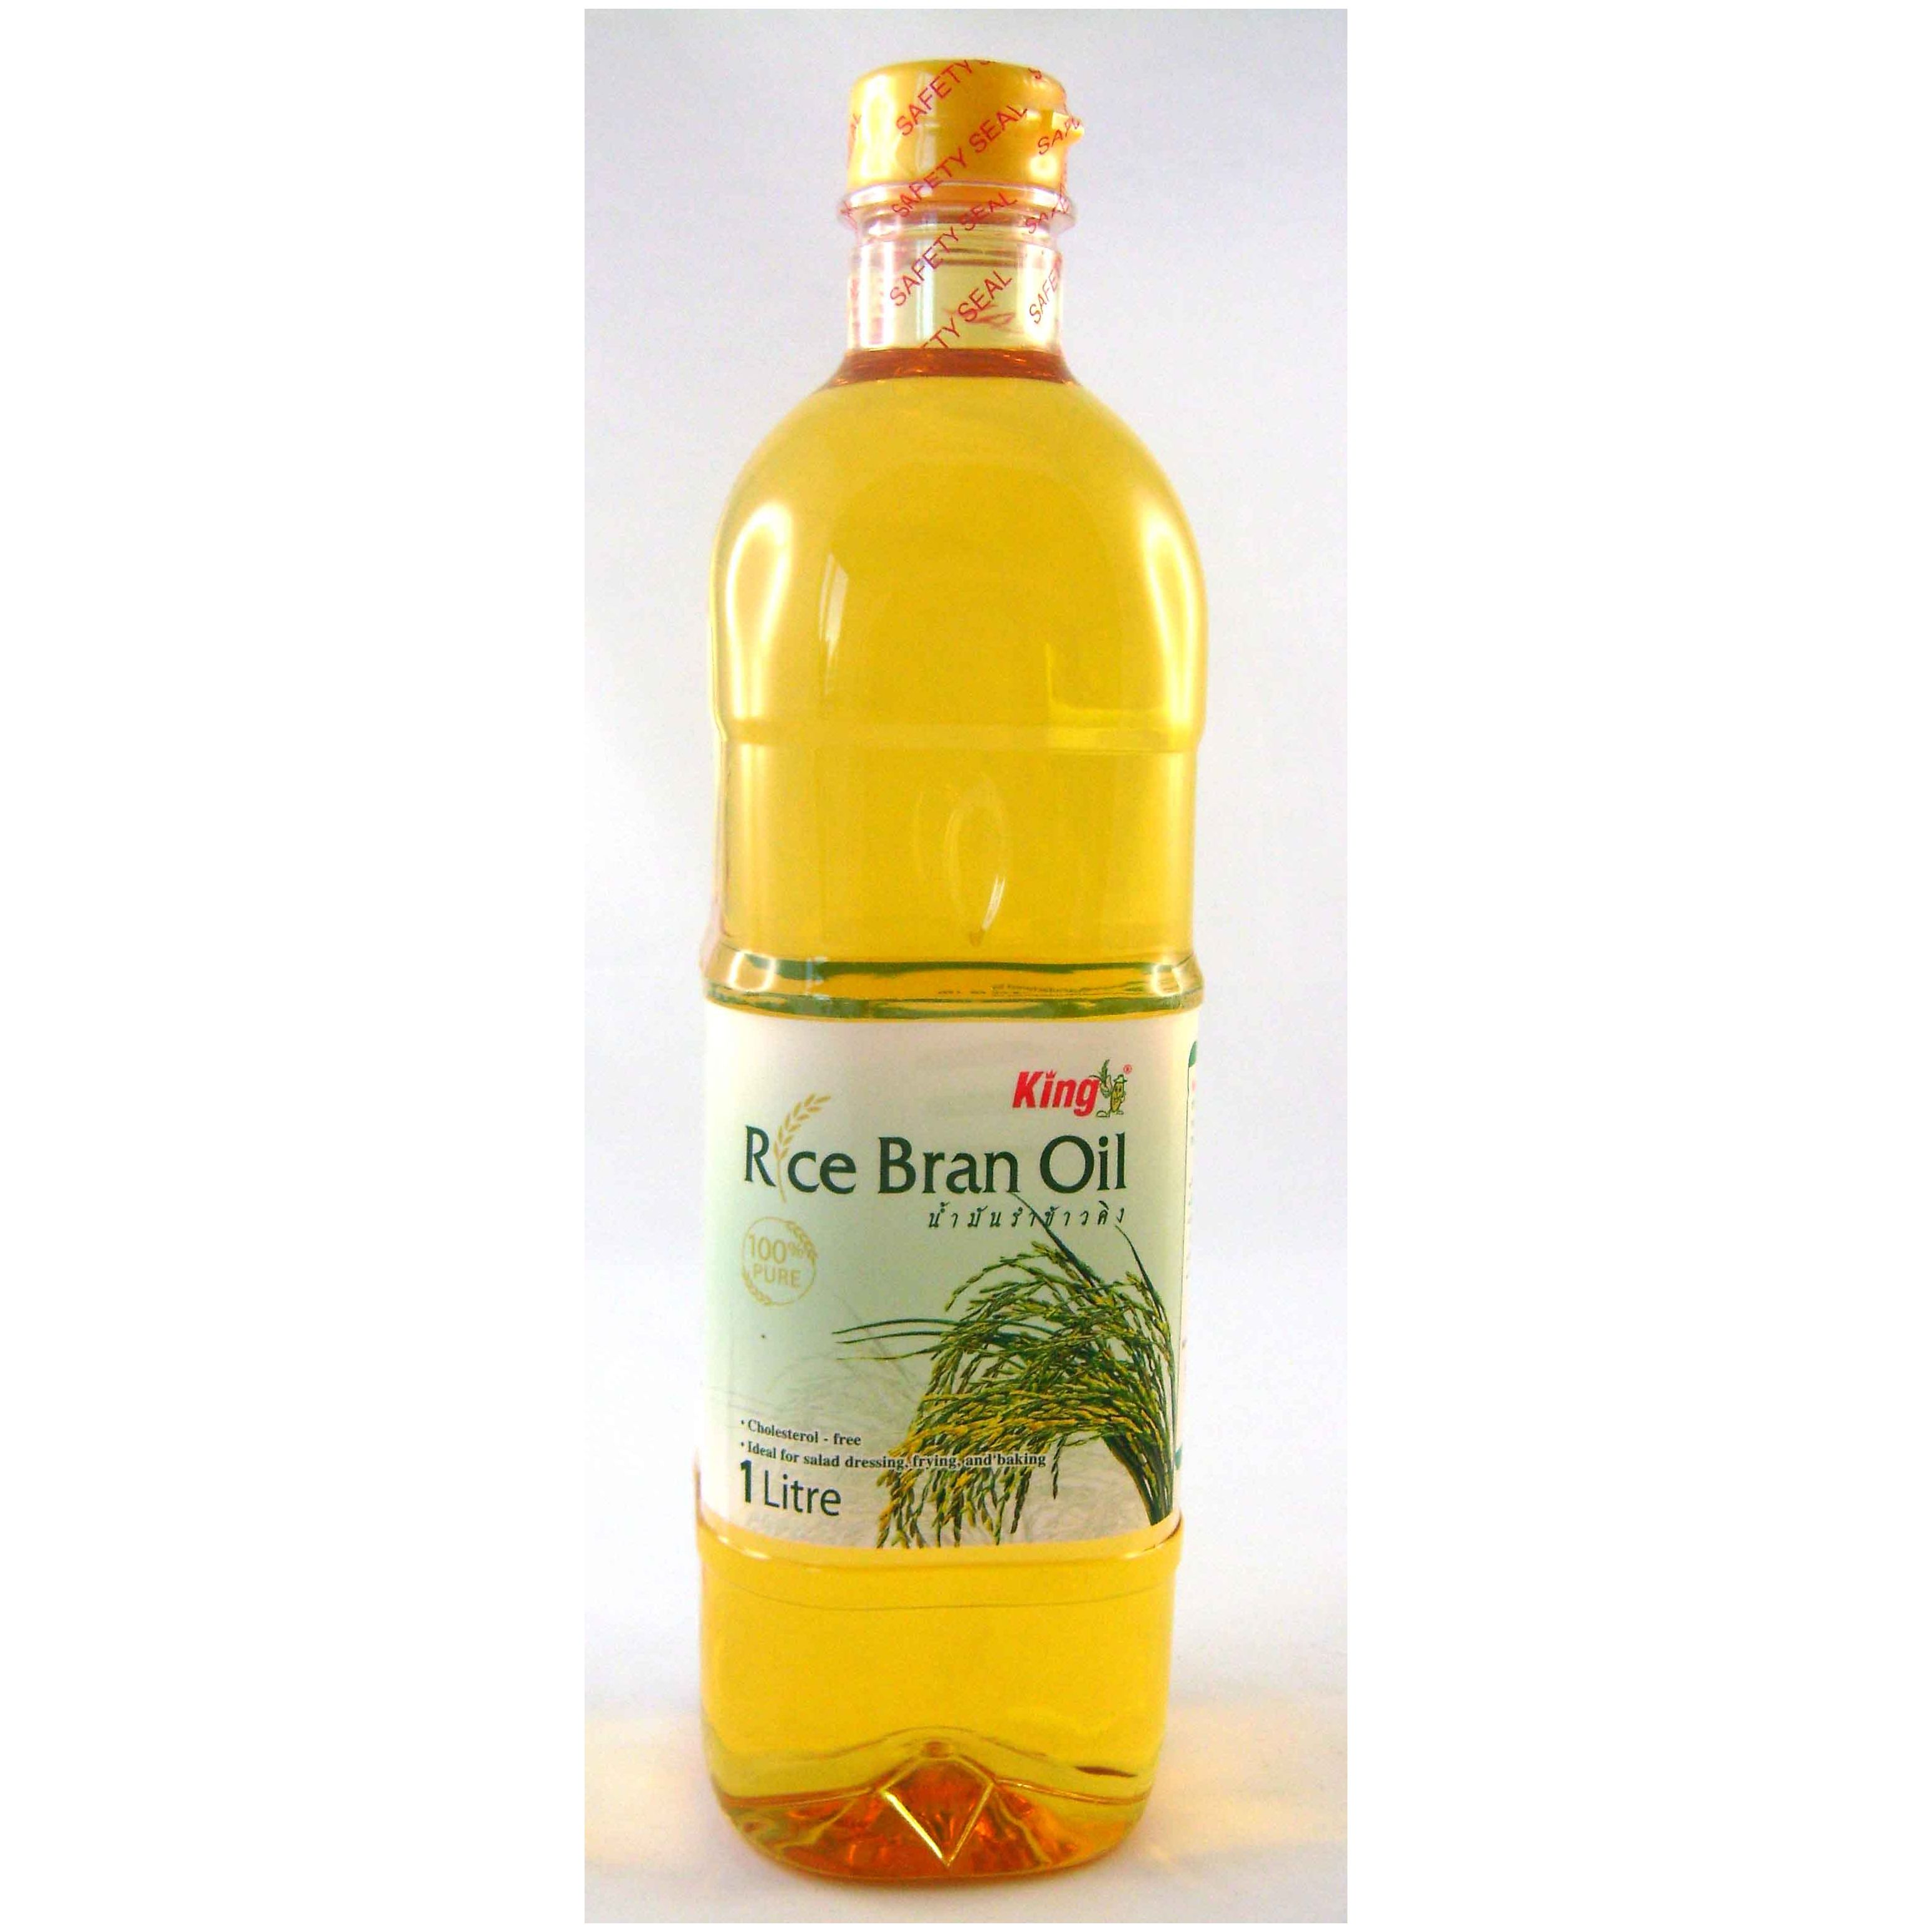 Where to buy rice bran oil